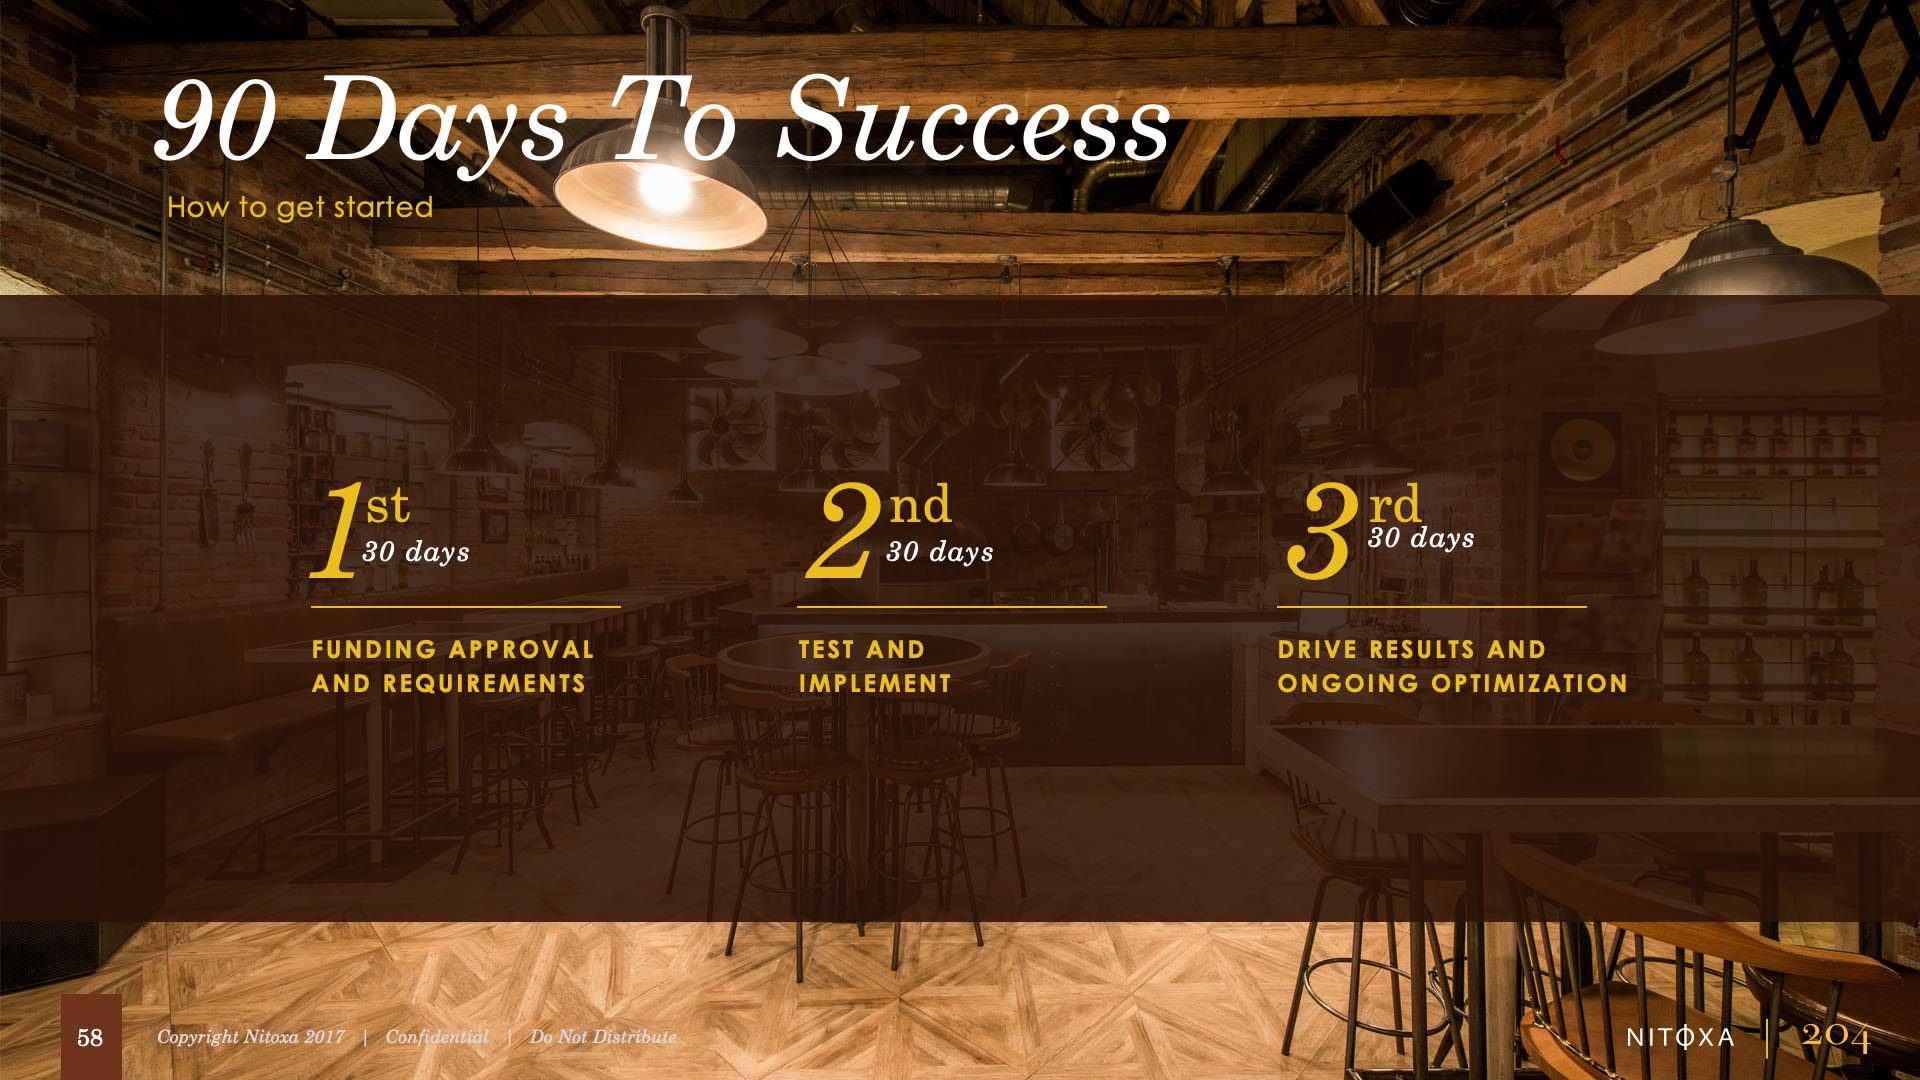 Slide design sample: 90 days to success broken down into 30 day increments